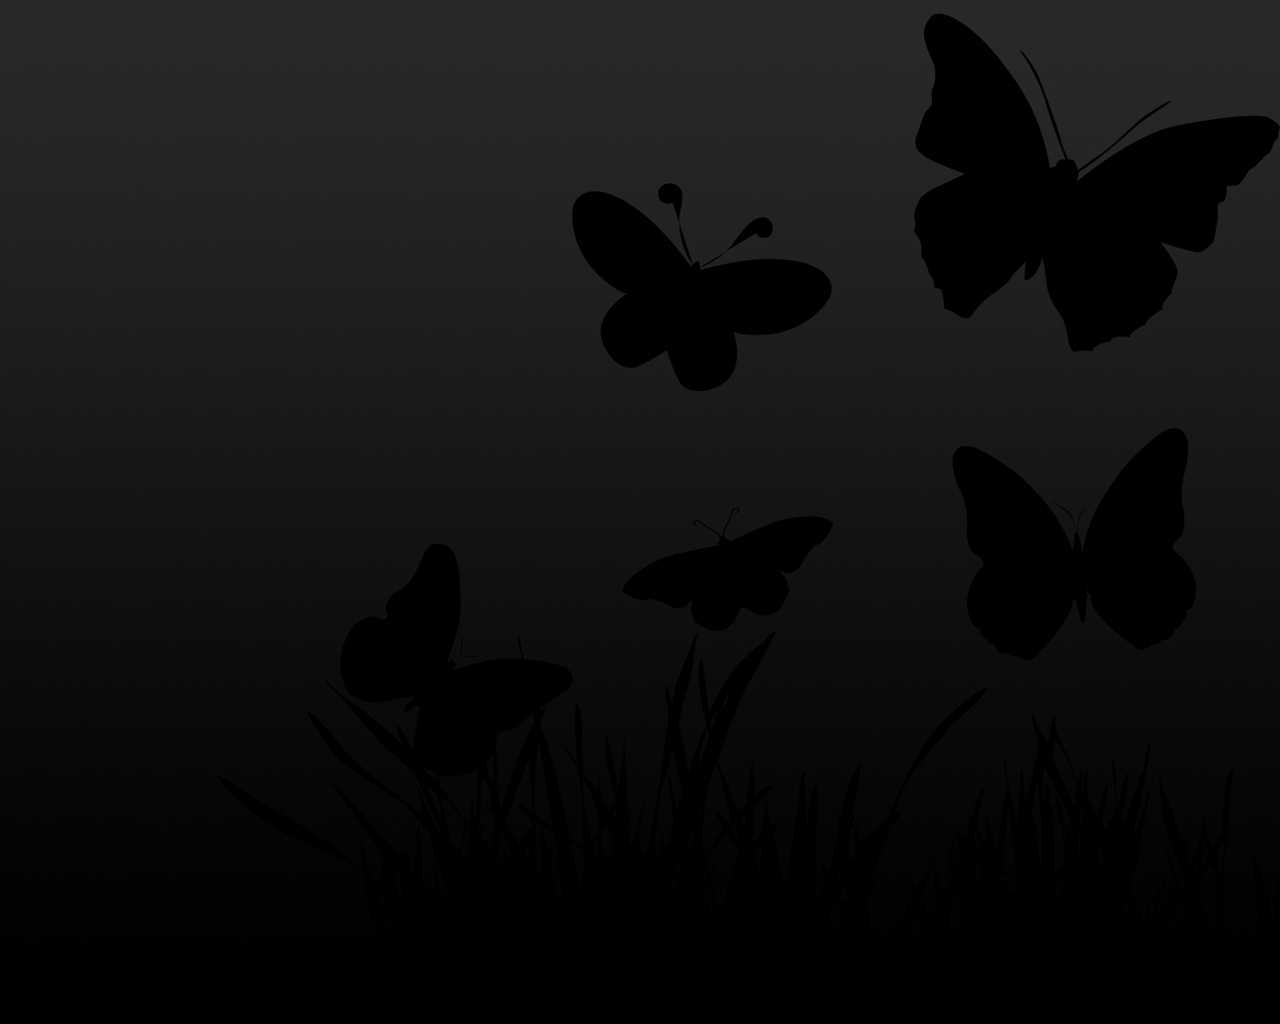 black and white images of butterflies 22 free wallpaper